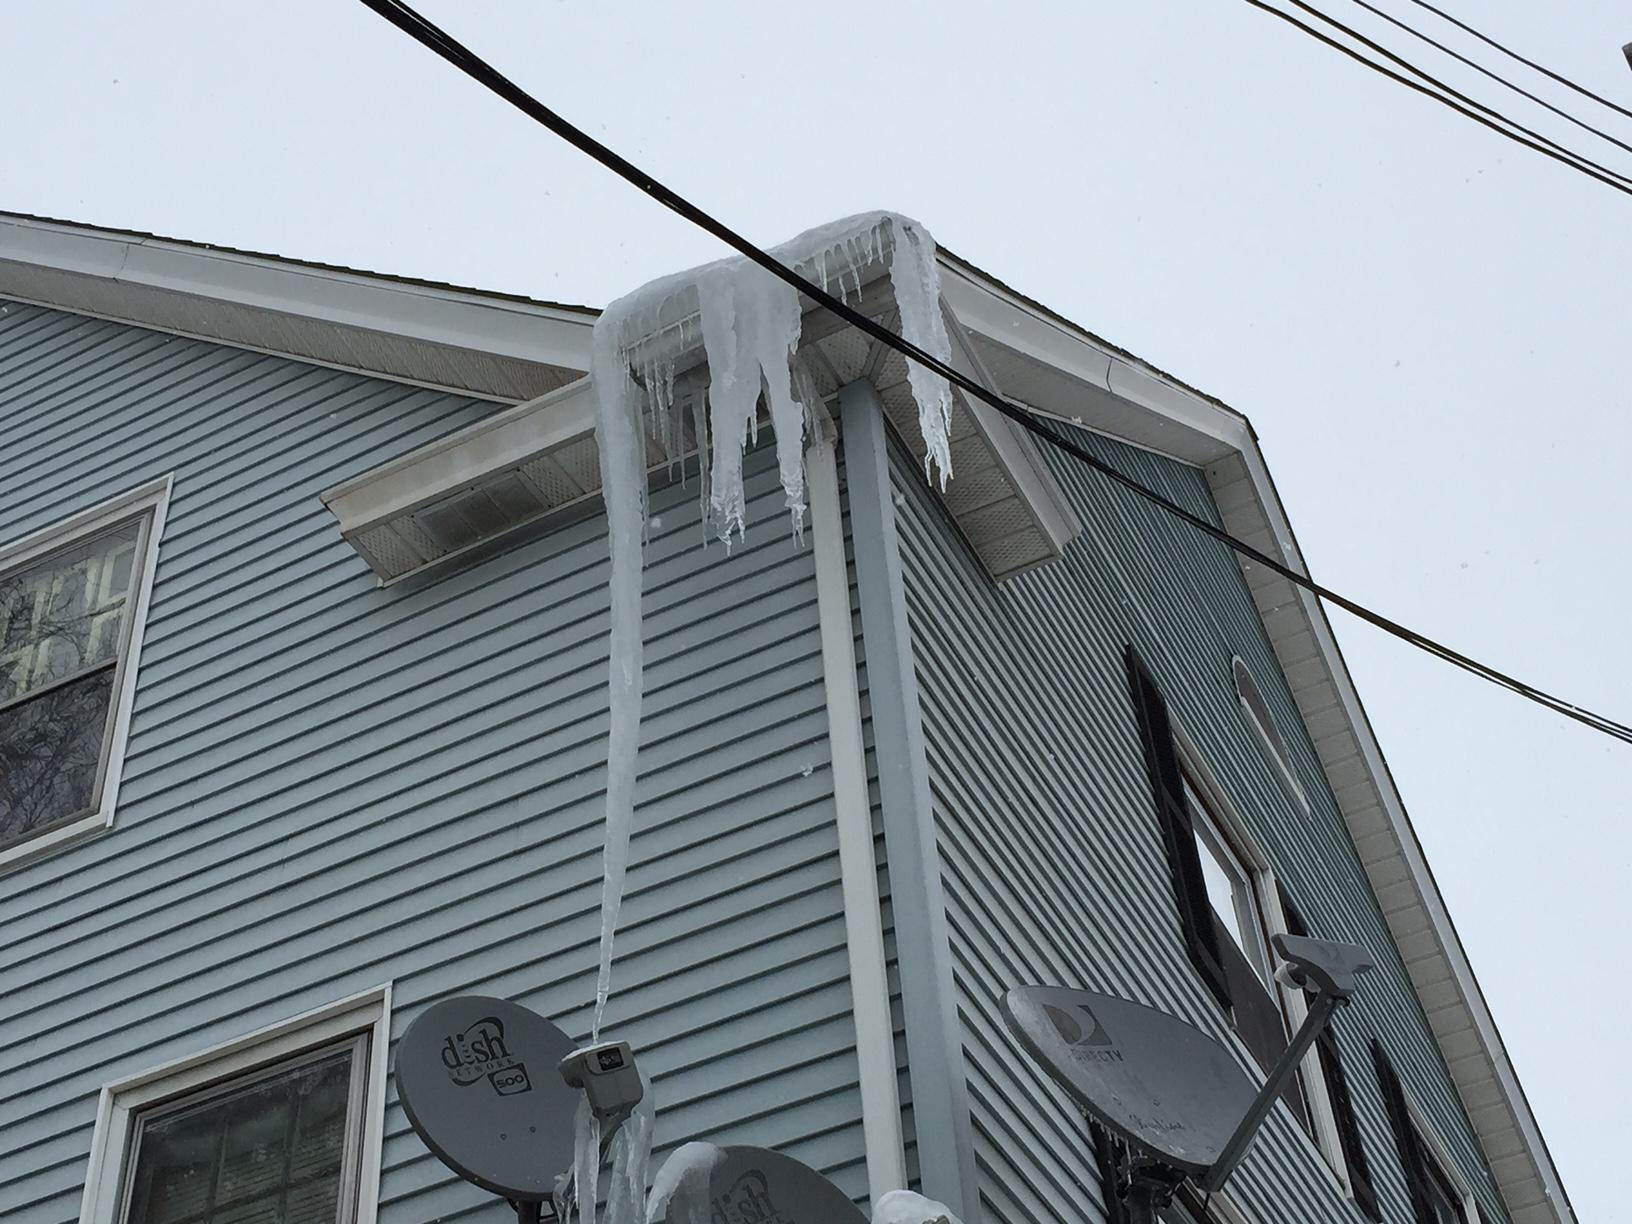 Big icicles cause severe damage